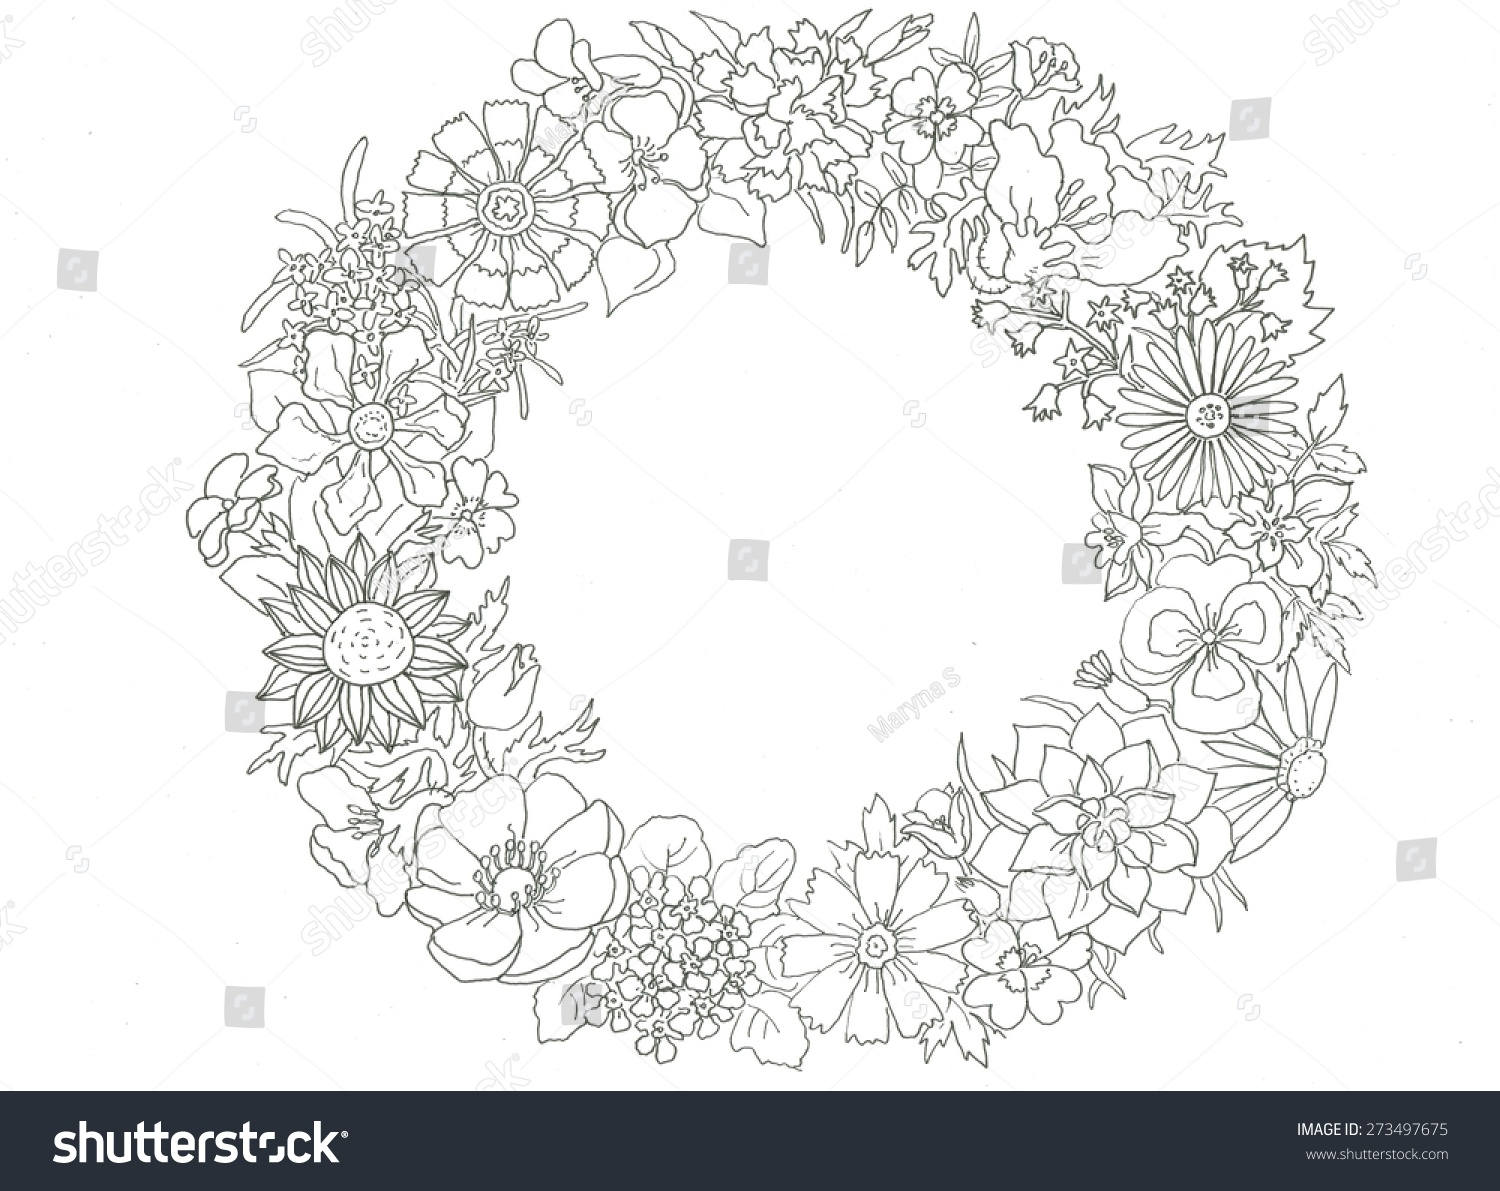 coloring page flower wreath silhouette illustration stock